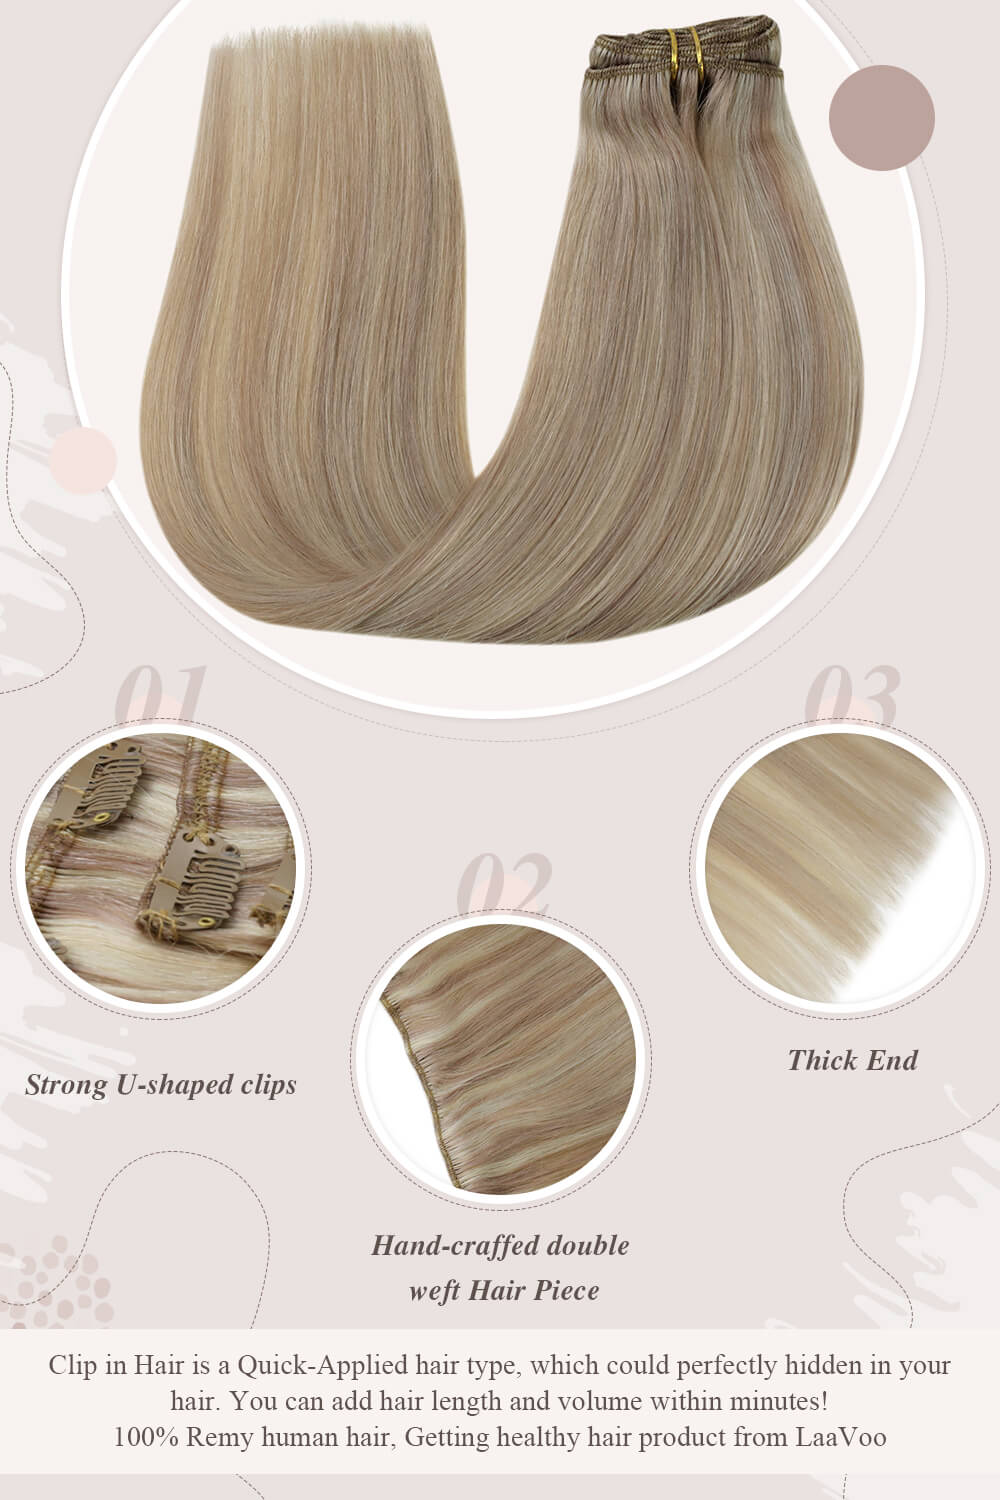 strong U shaped clips hand craffed double weft hair piece thick end clip in hair perfectly hidden in your hair you can add hair length and volume within minutes Remy human hair getting healthy hair product